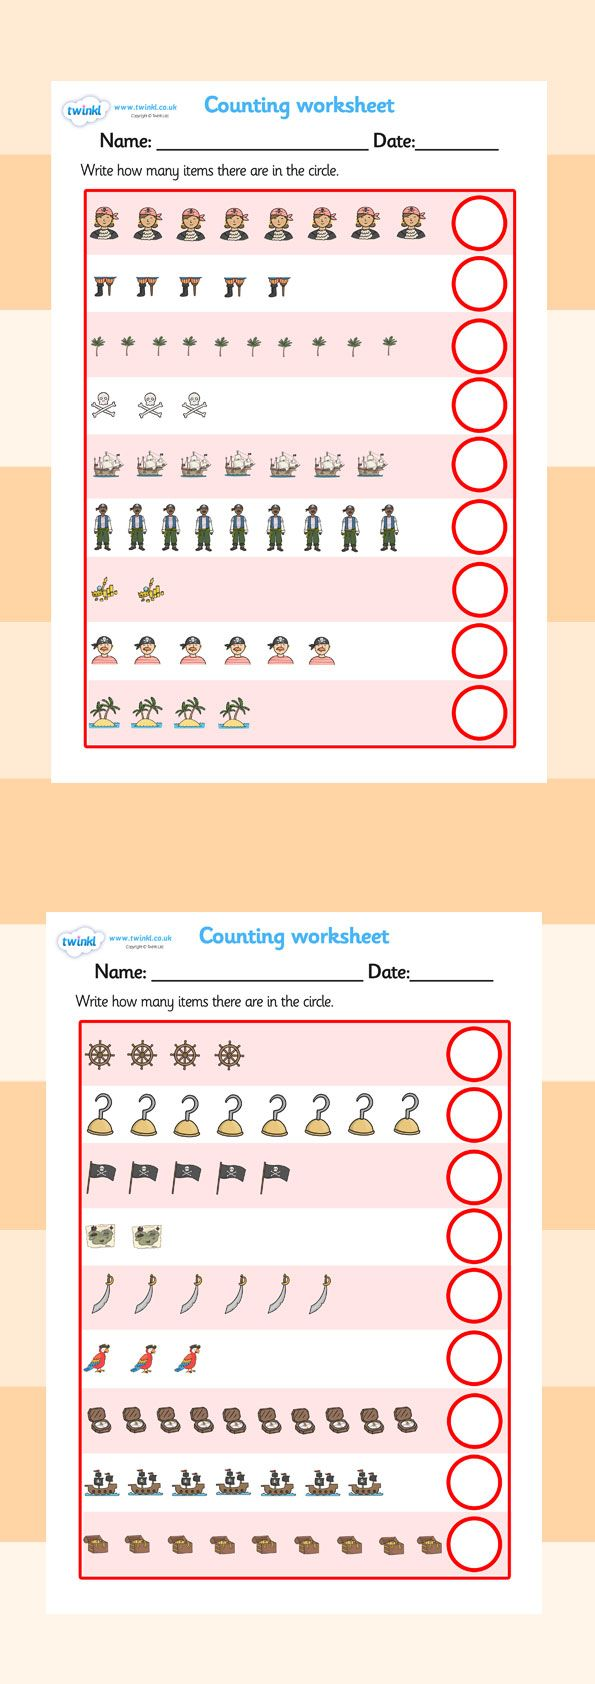 twinkl resources counting worksheets pirates classroom printables for pre school. Black Bedroom Furniture Sets. Home Design Ideas